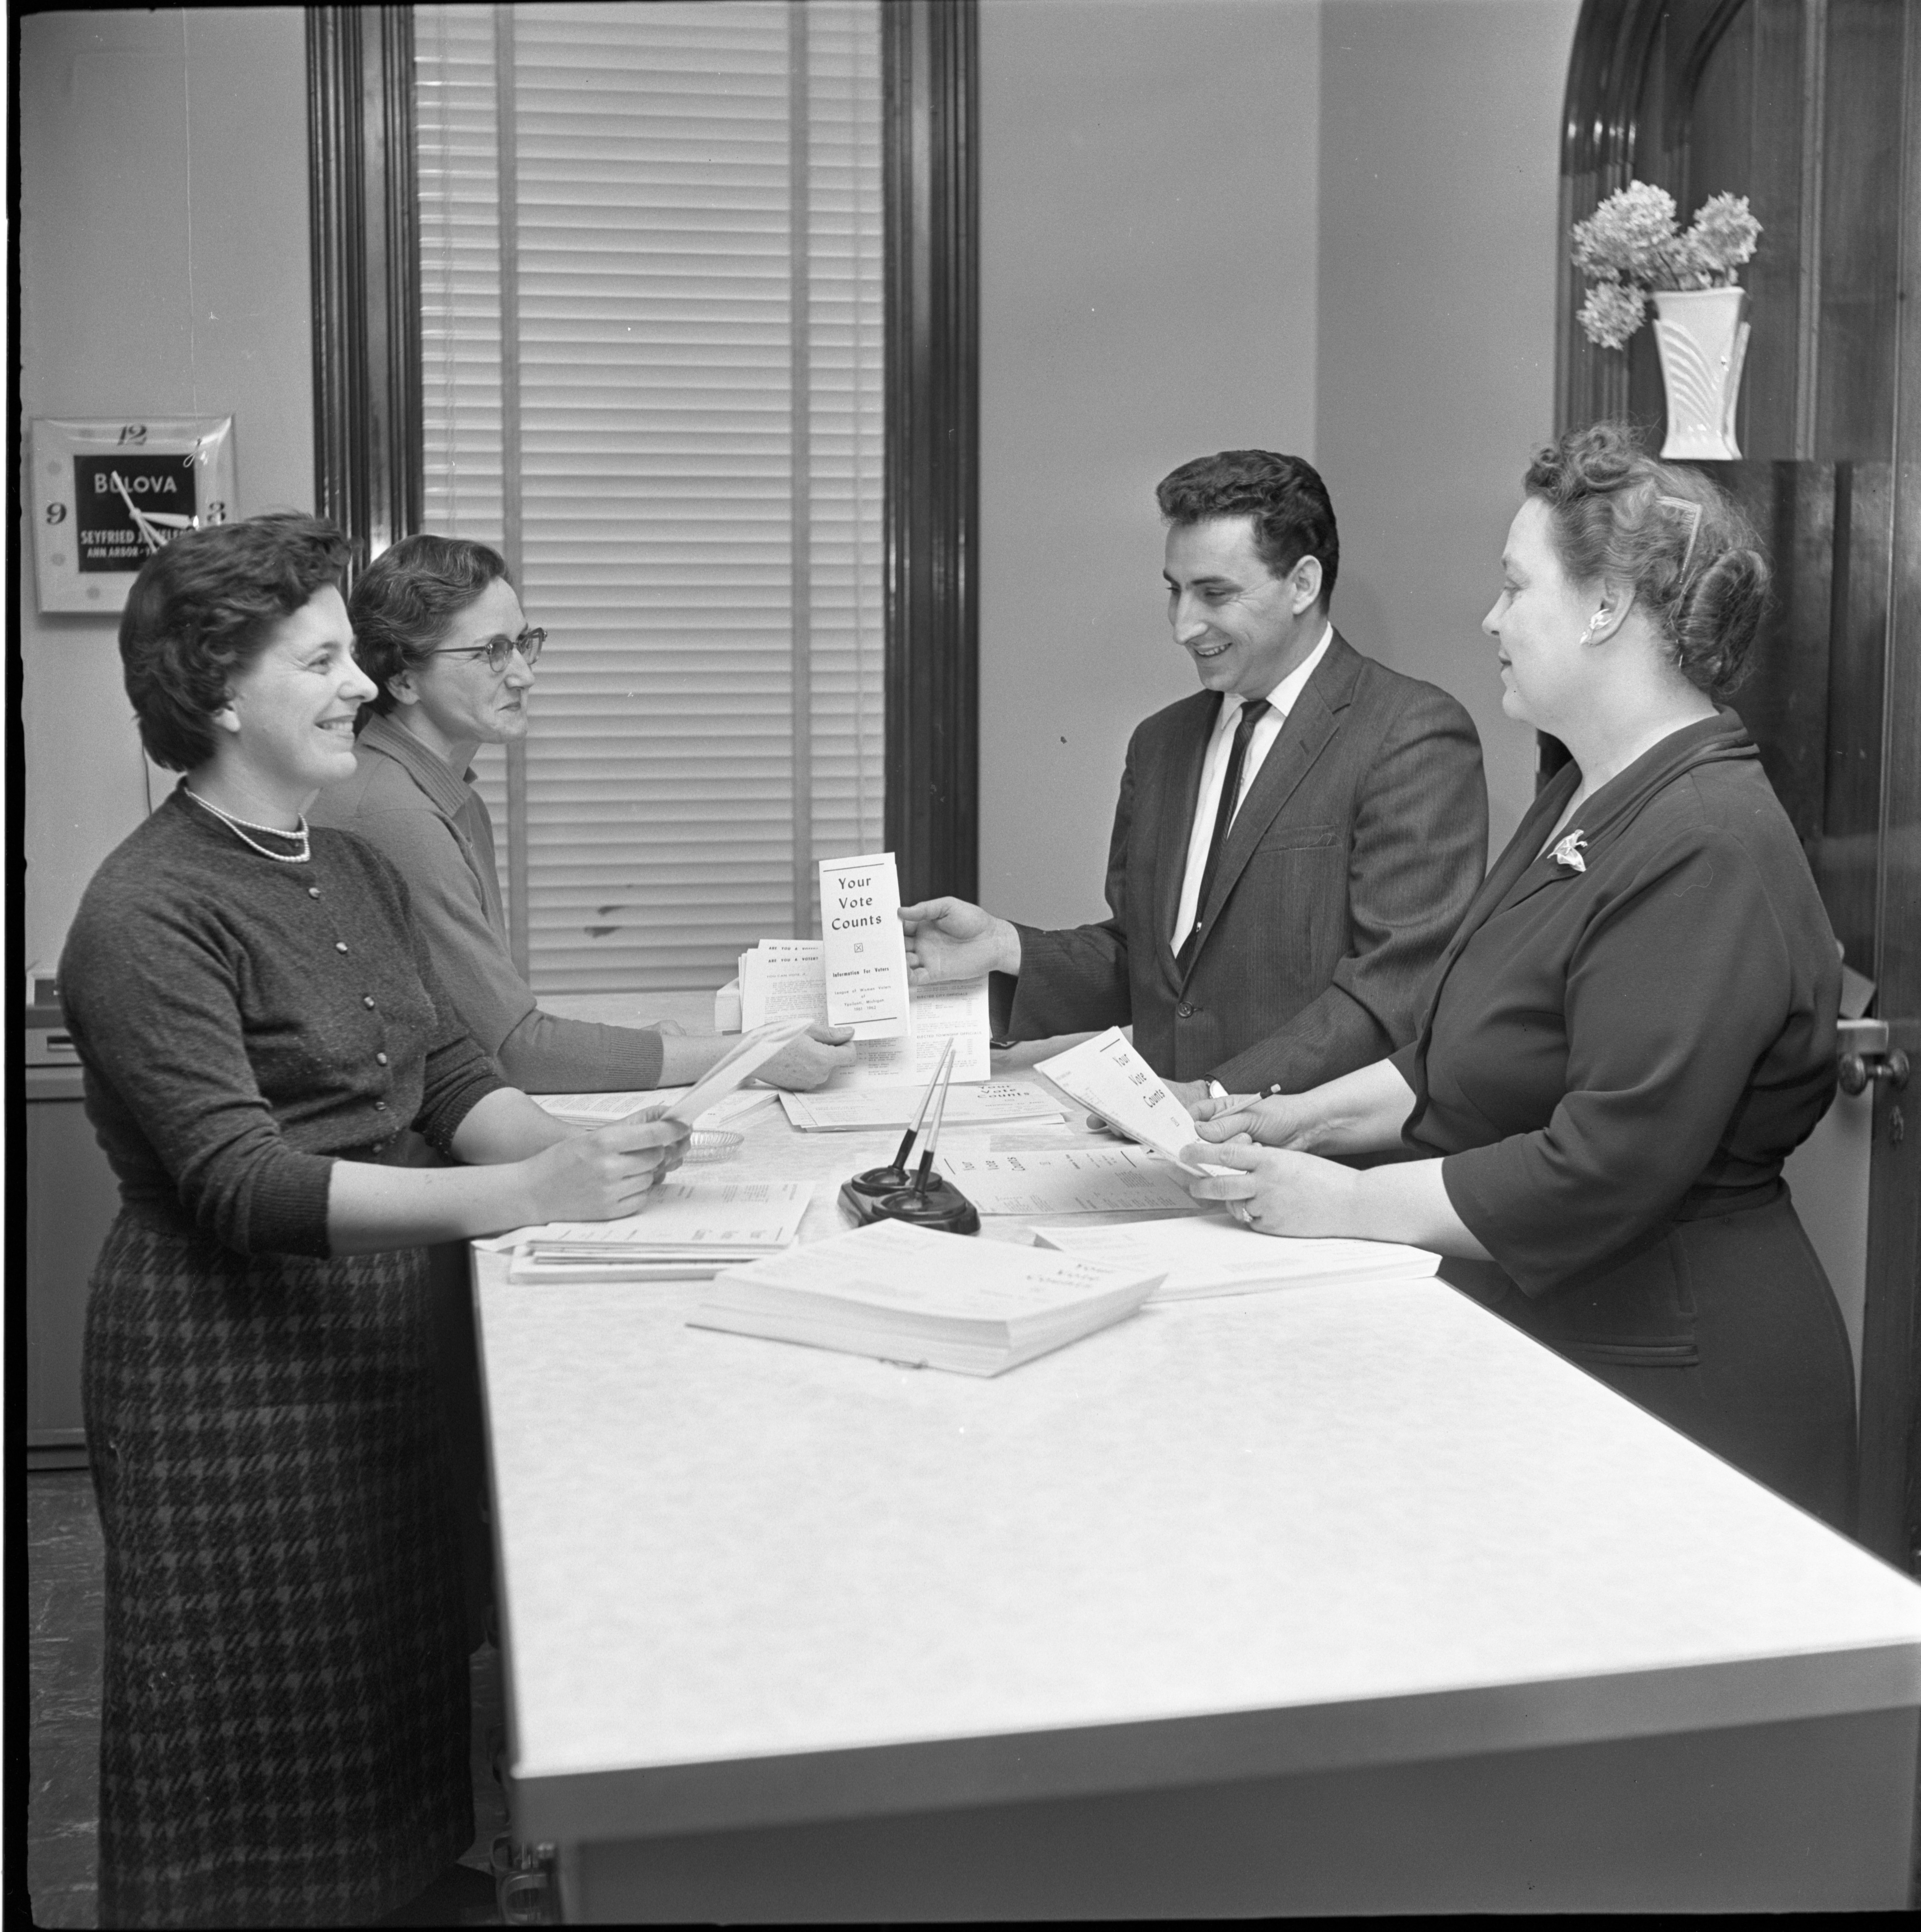 Ypsilanti League Of Women Voters Distribute Voter Information Guides, January 1962 image